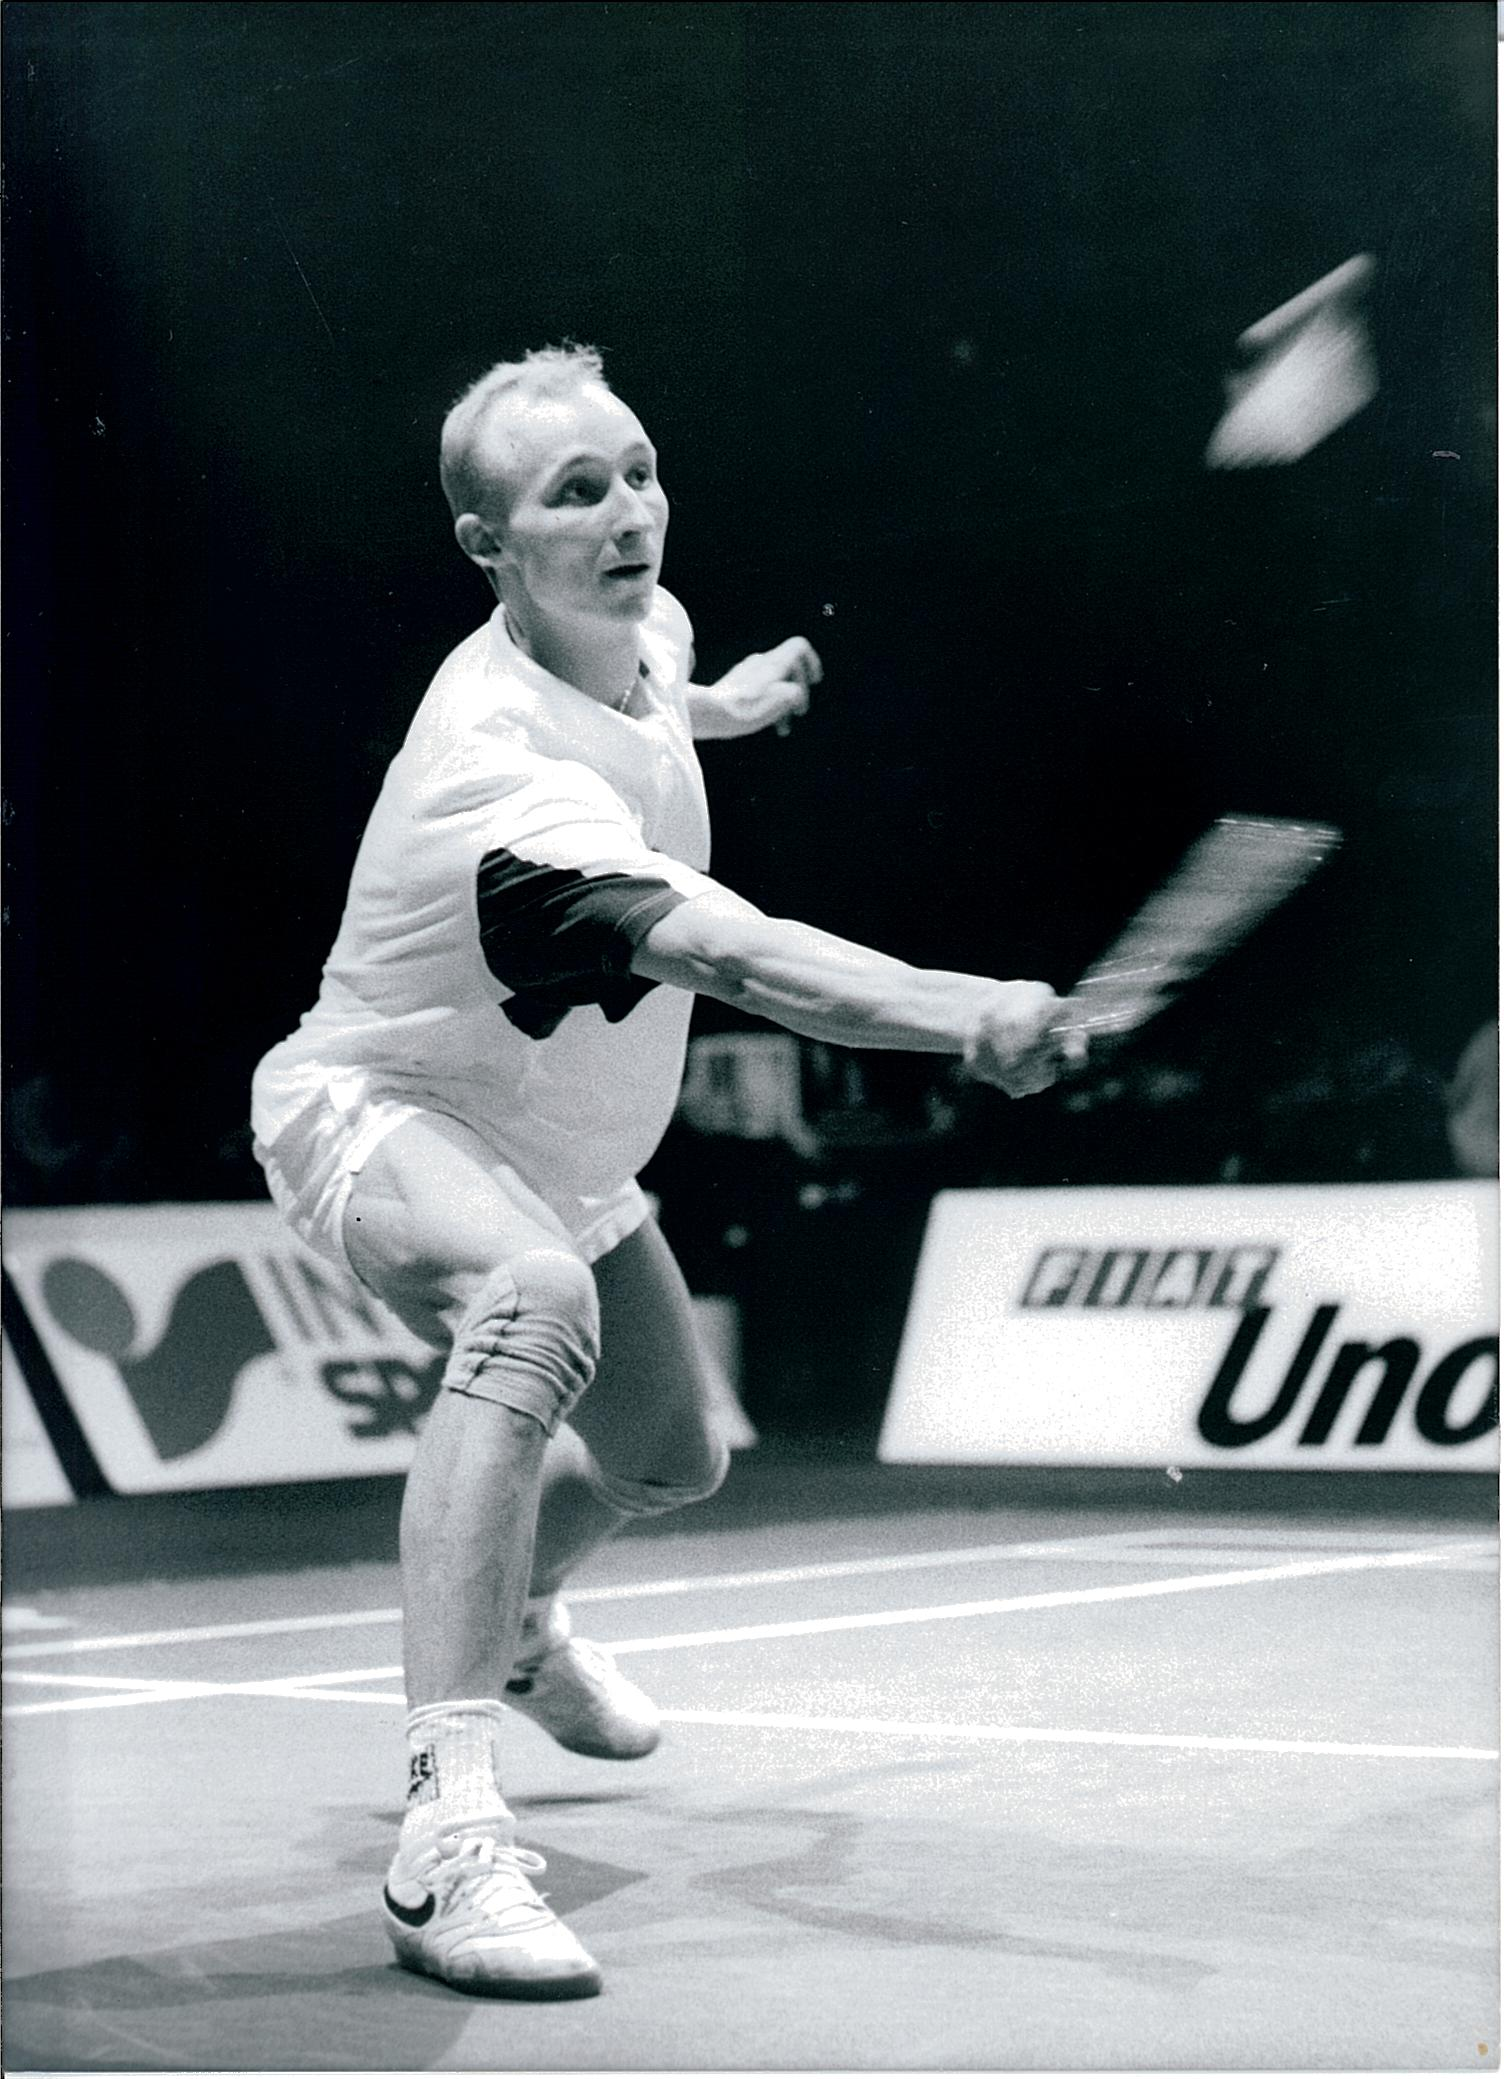 Denmarks thomas lund in action at the 1991 world championships